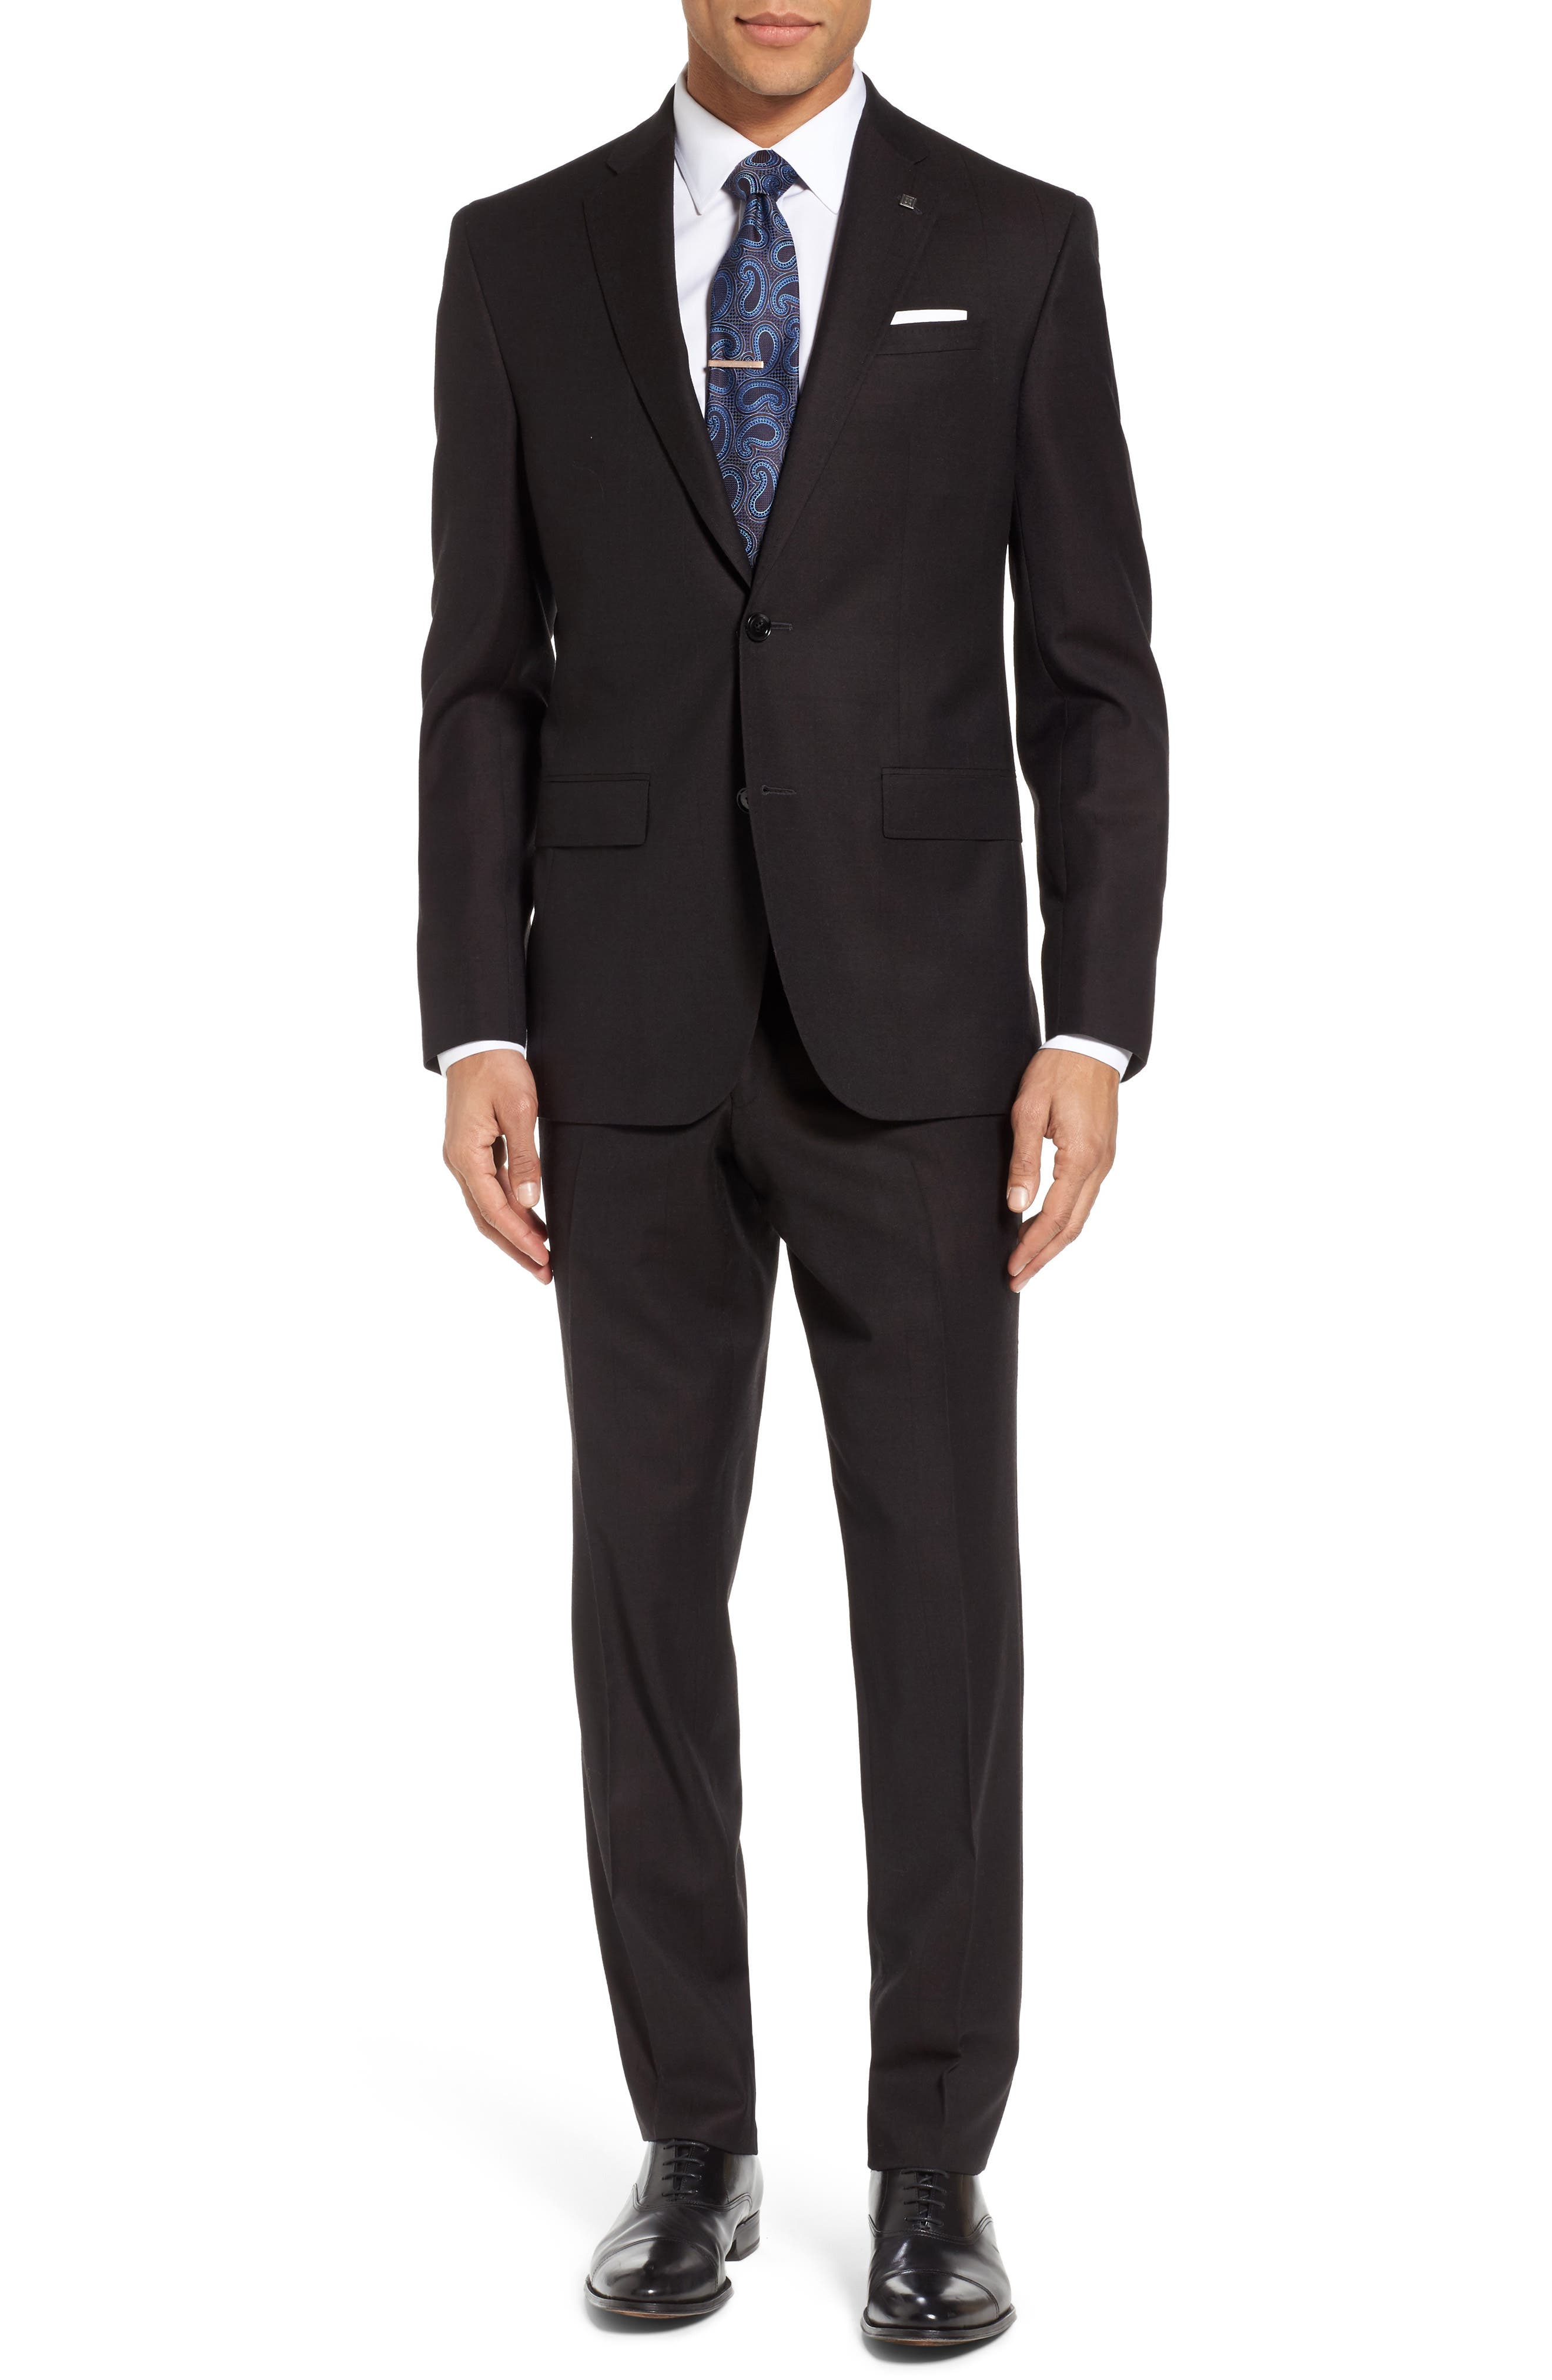 Jay Trim Fit Solid Wool Suit,                             Main thumbnail 1, color,                             Brown